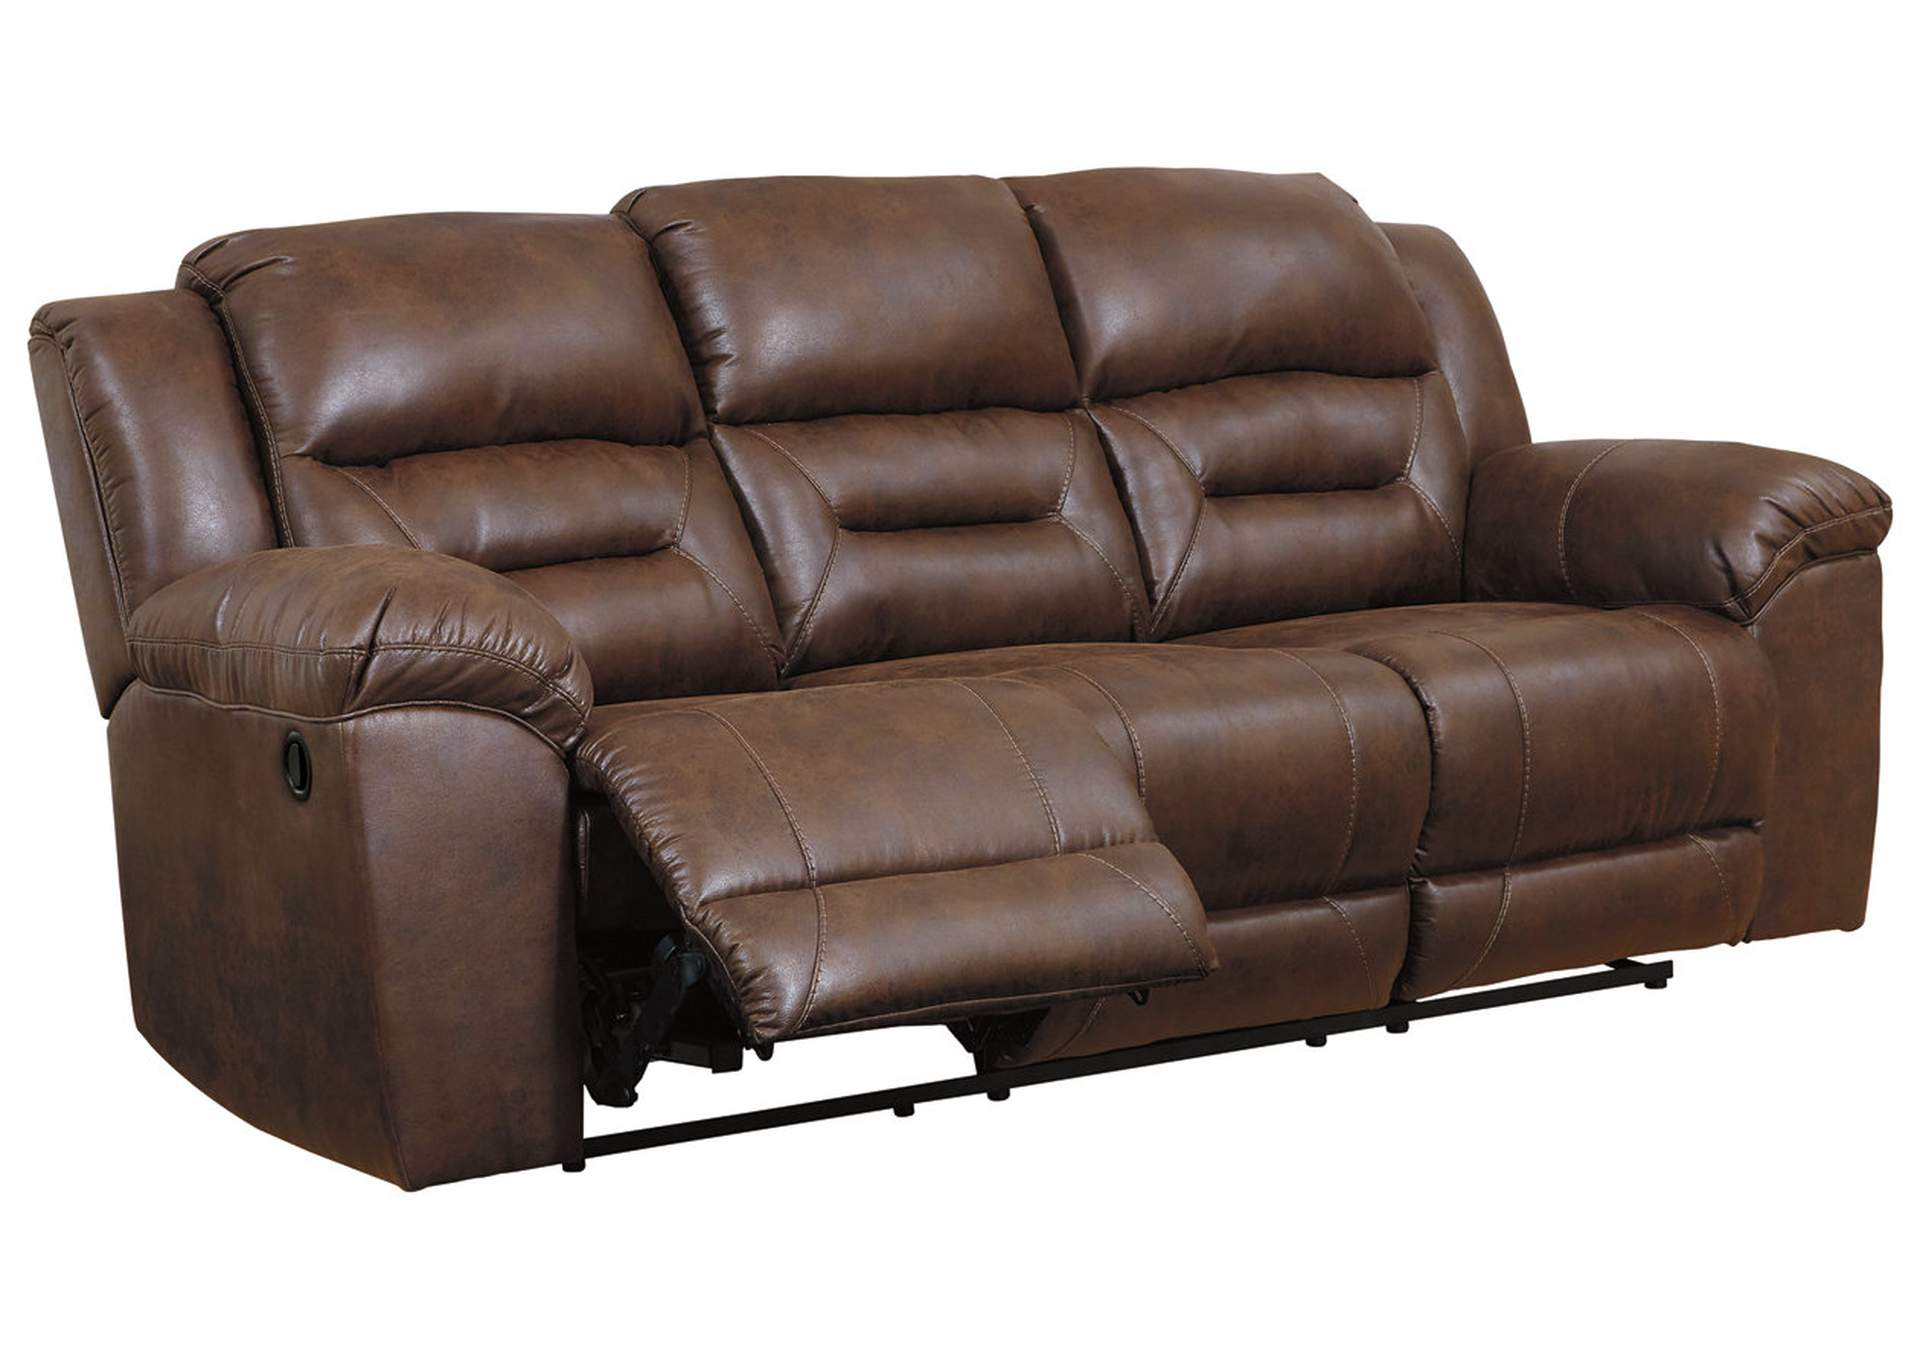 Affordable Mattress And Furniture Stoneland Brown Reclining Sofa